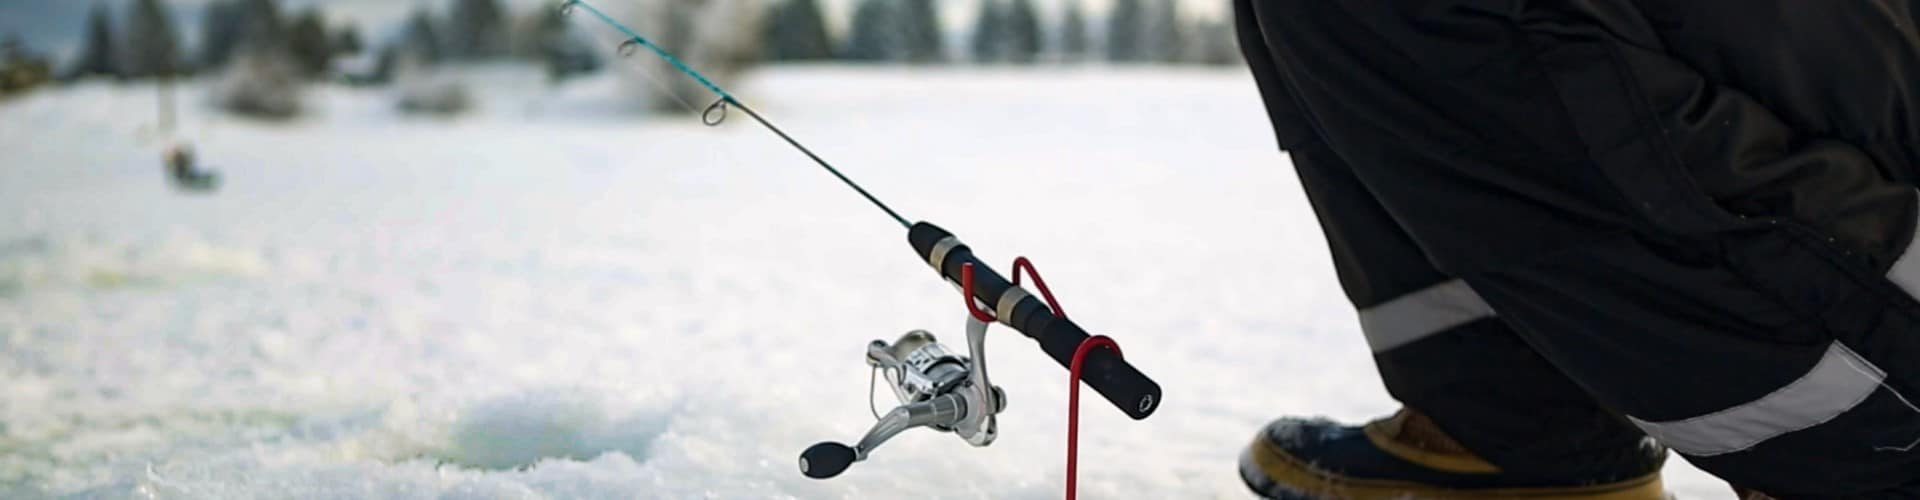 Best Ice Fishing Rods Reviewed in Detail